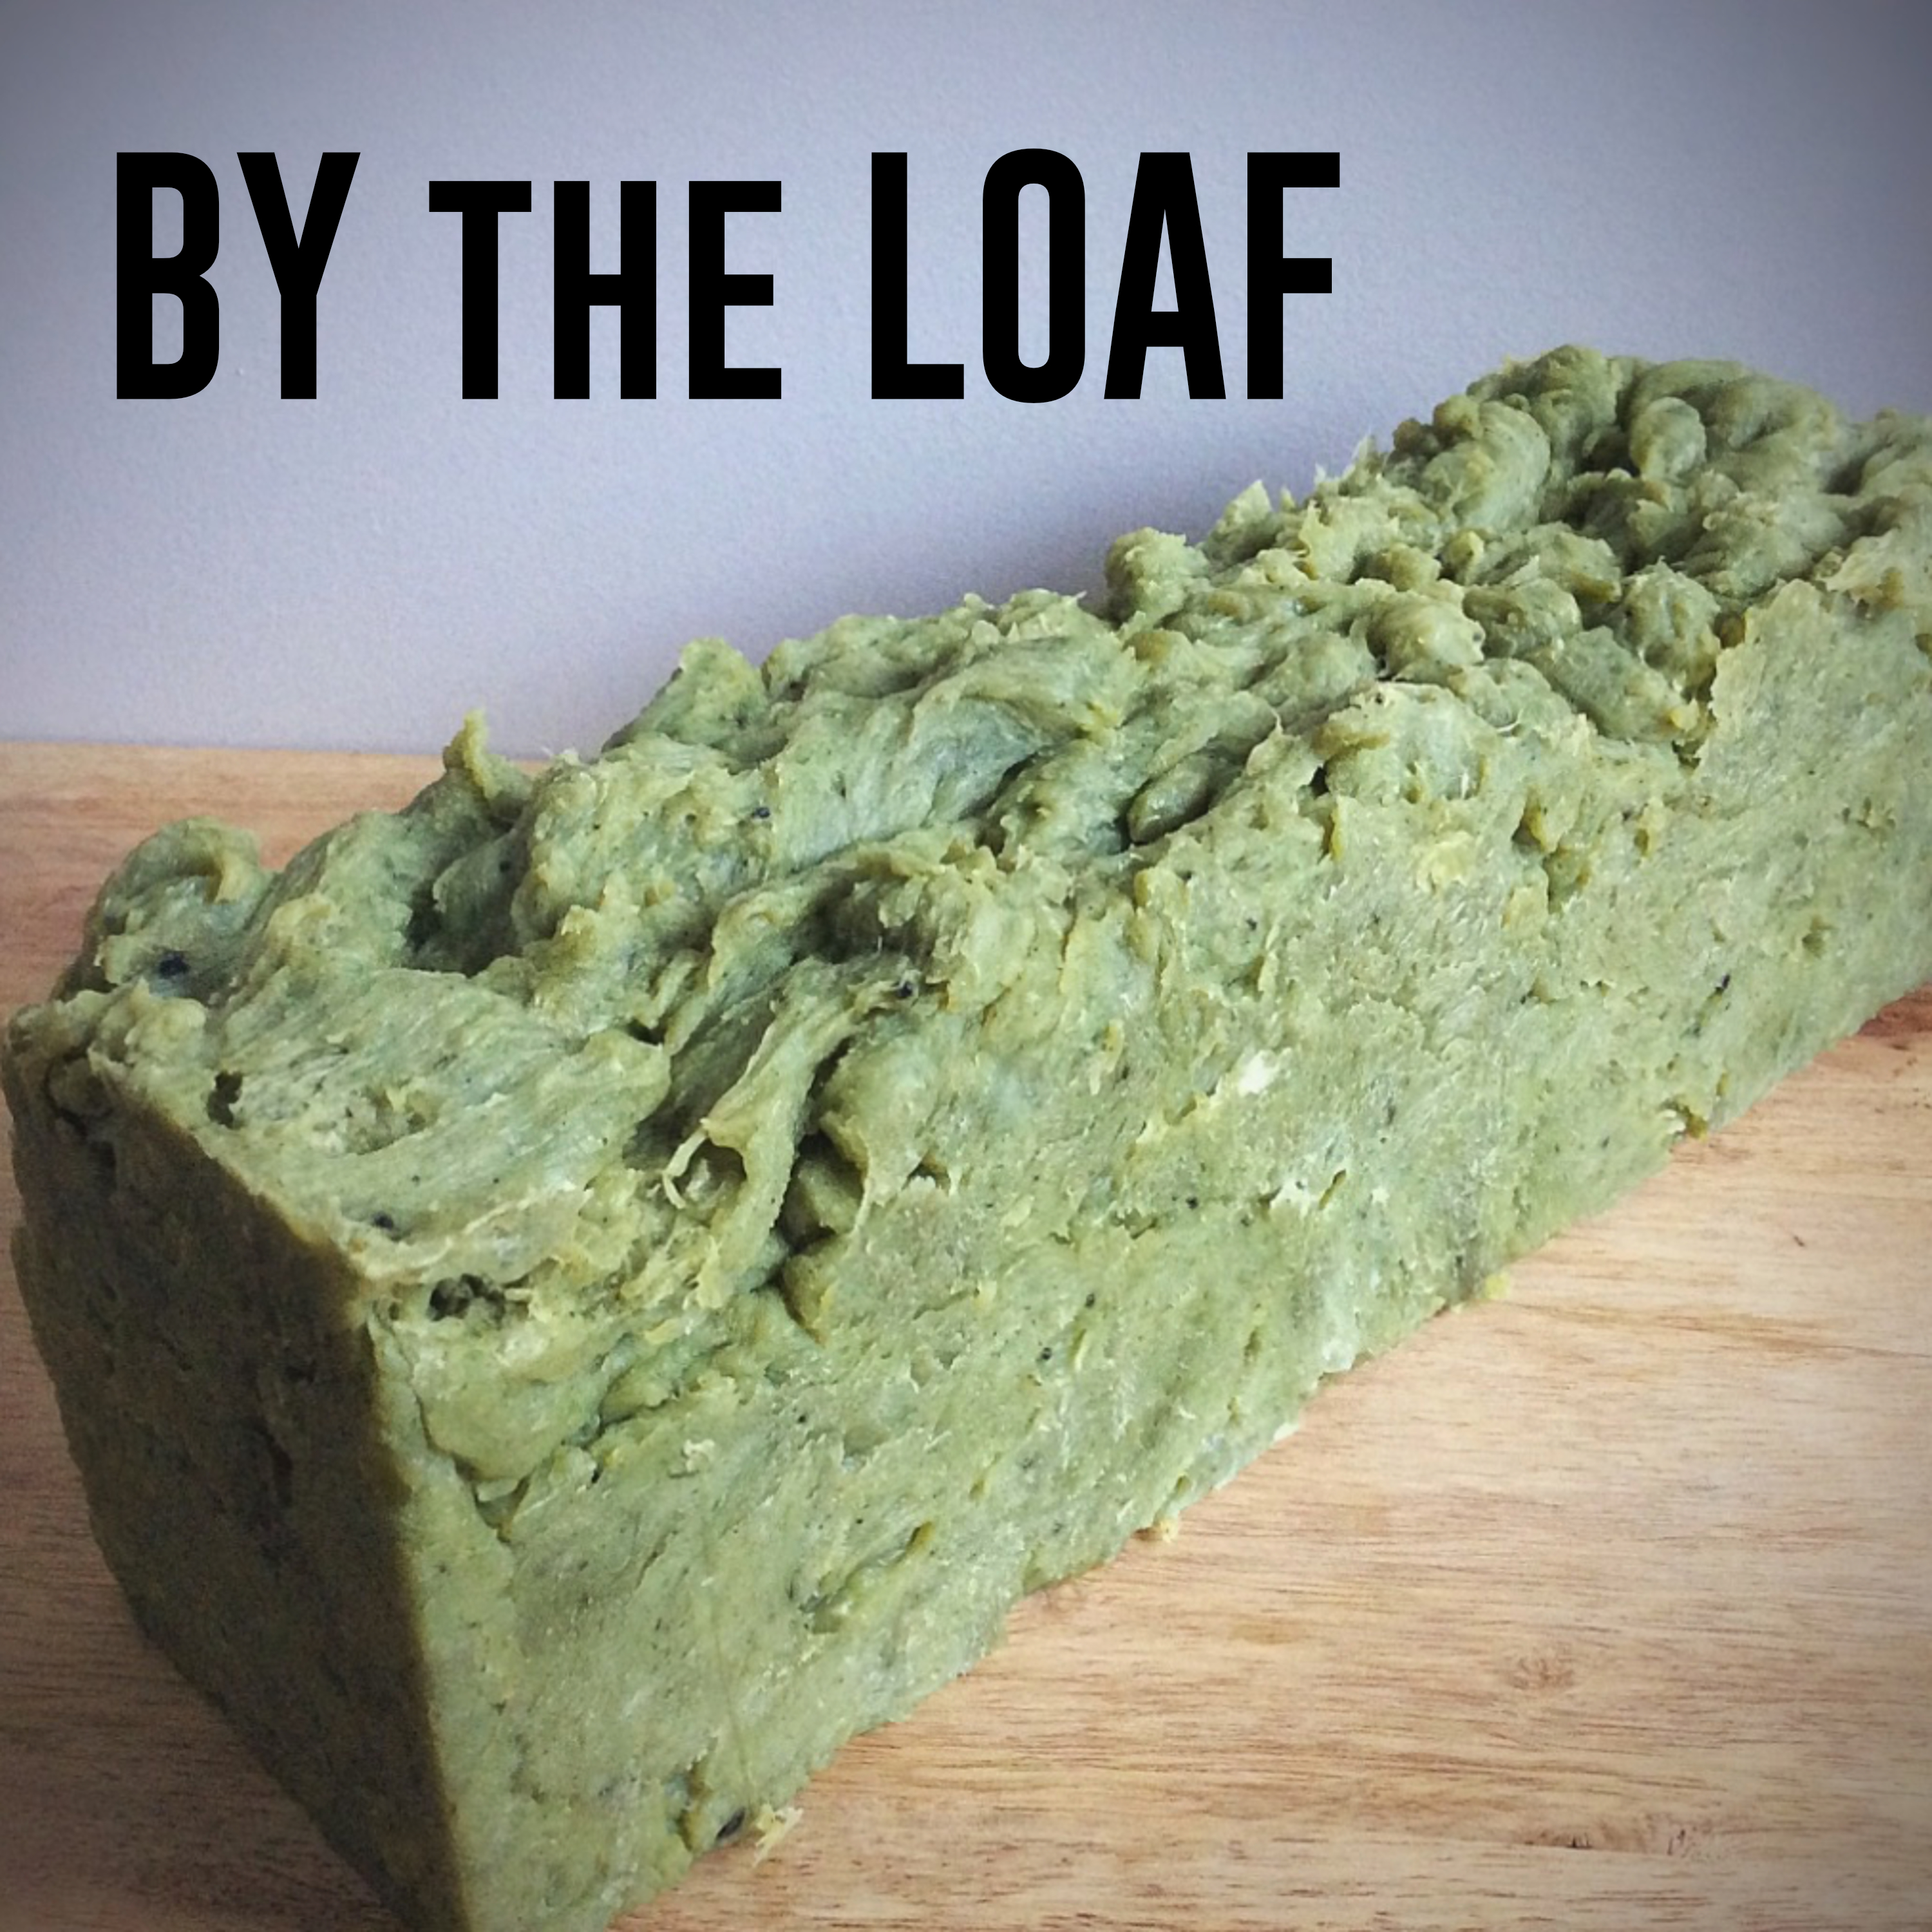 Glorious Life by the loaf Soap